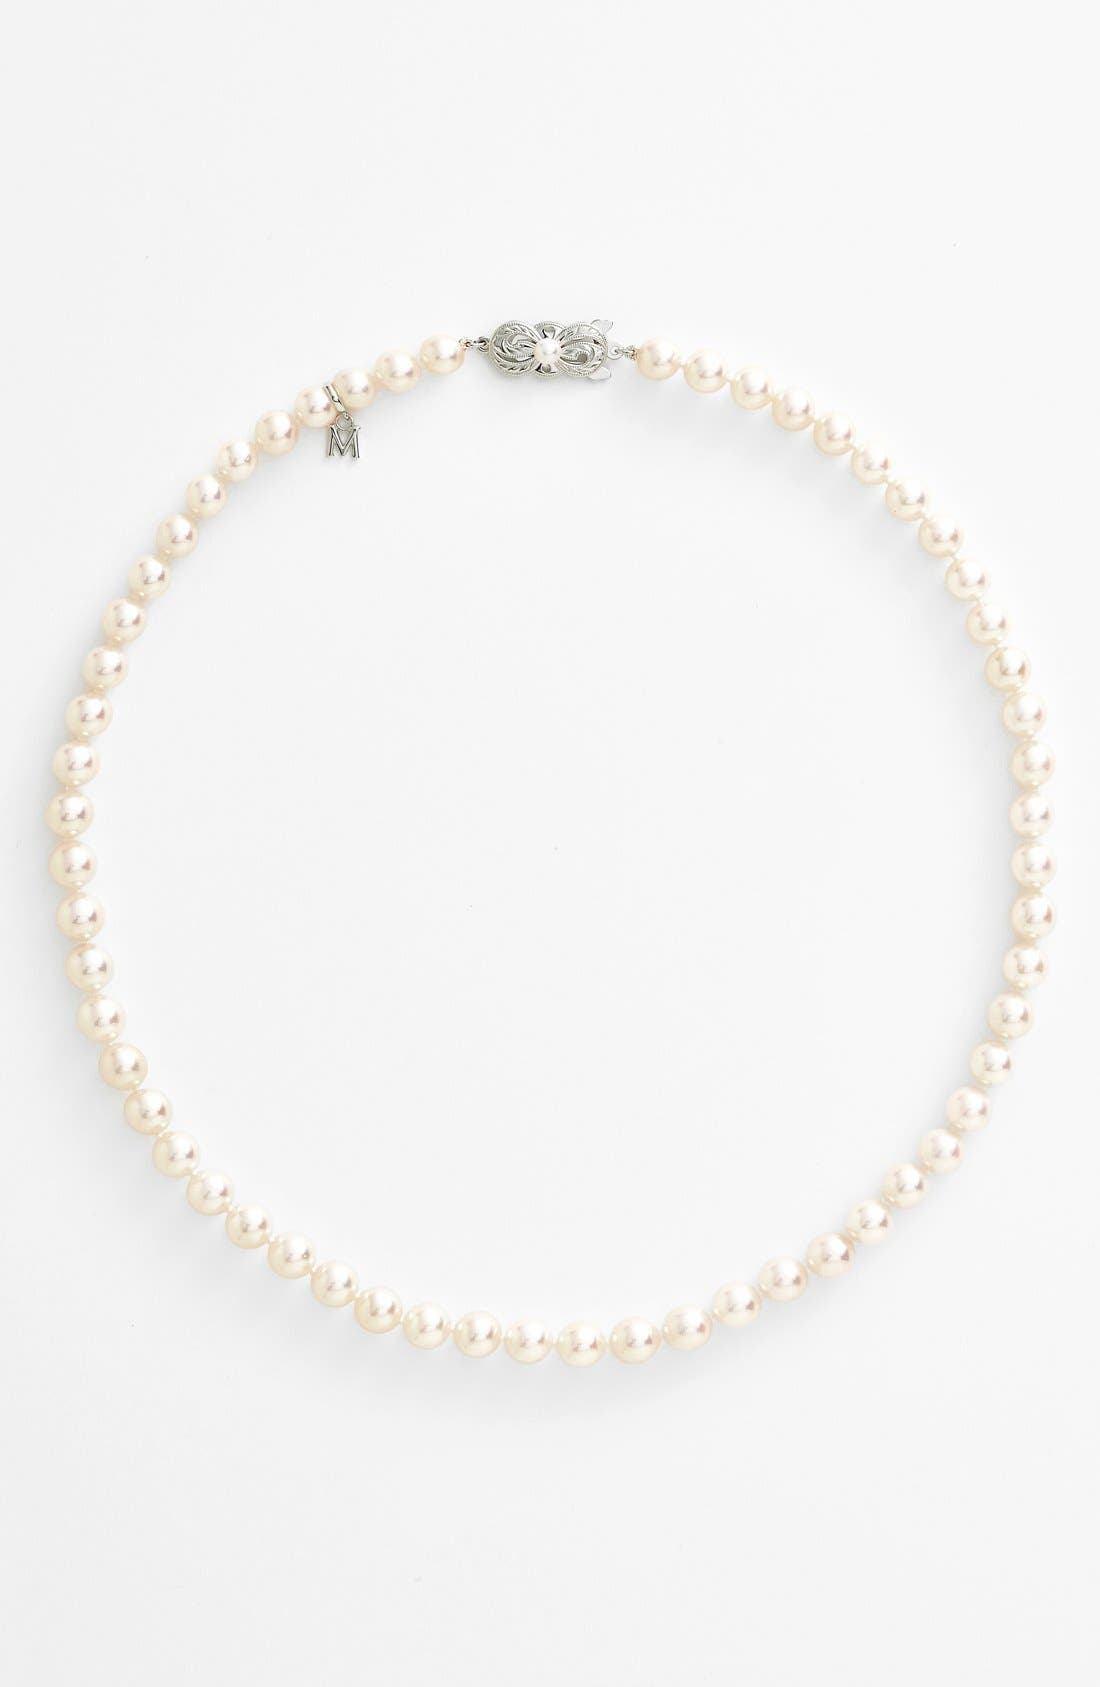 Akoya Cultured Pearl Necklace,                             Alternate thumbnail 2, color,                             710